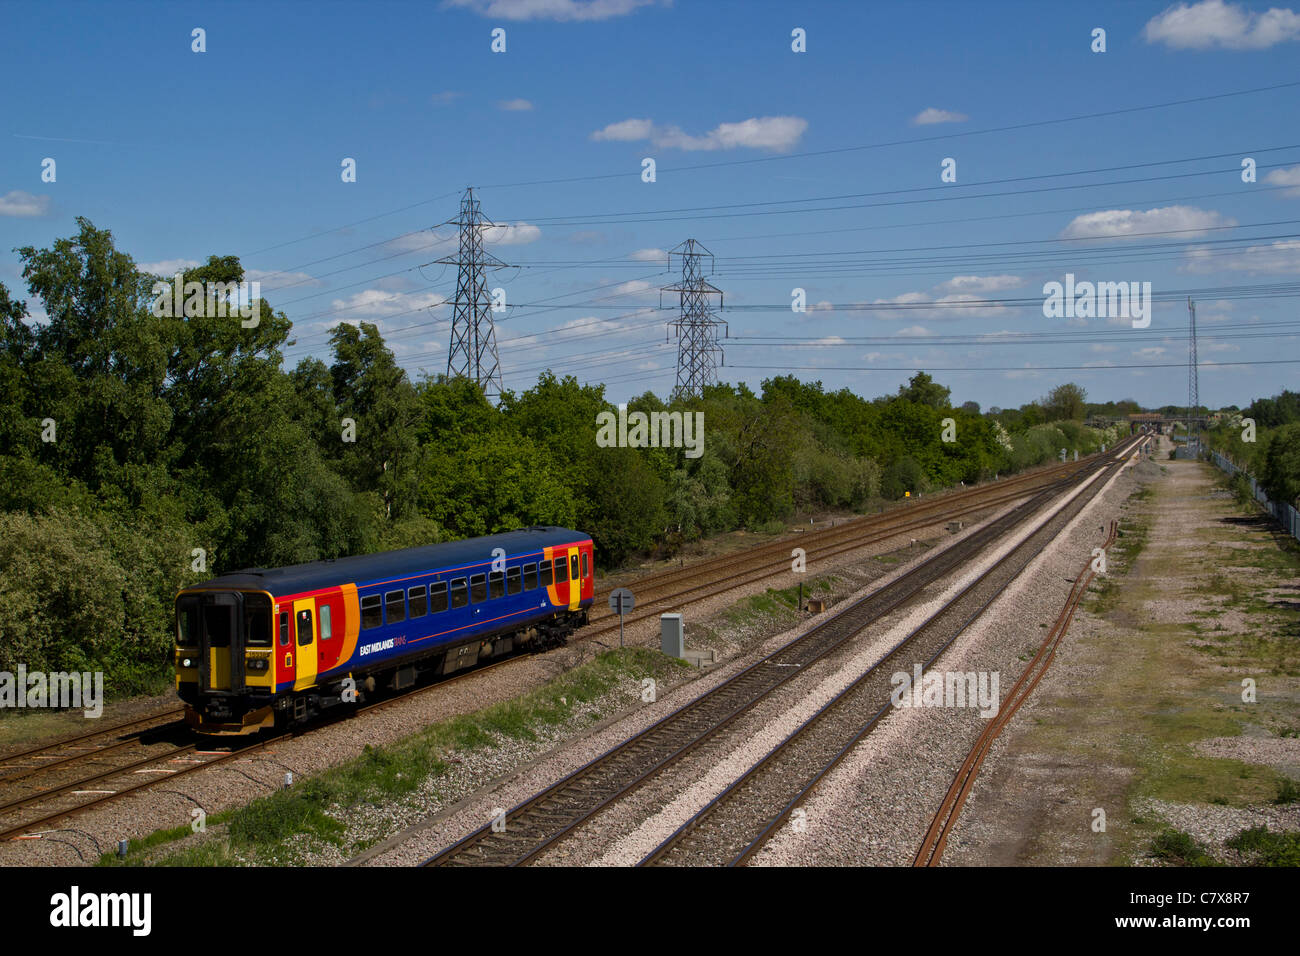 East midlands Trains class 153 single coach diesel multipul unit passes North Staffordshire junction, Willington, - Stock Image